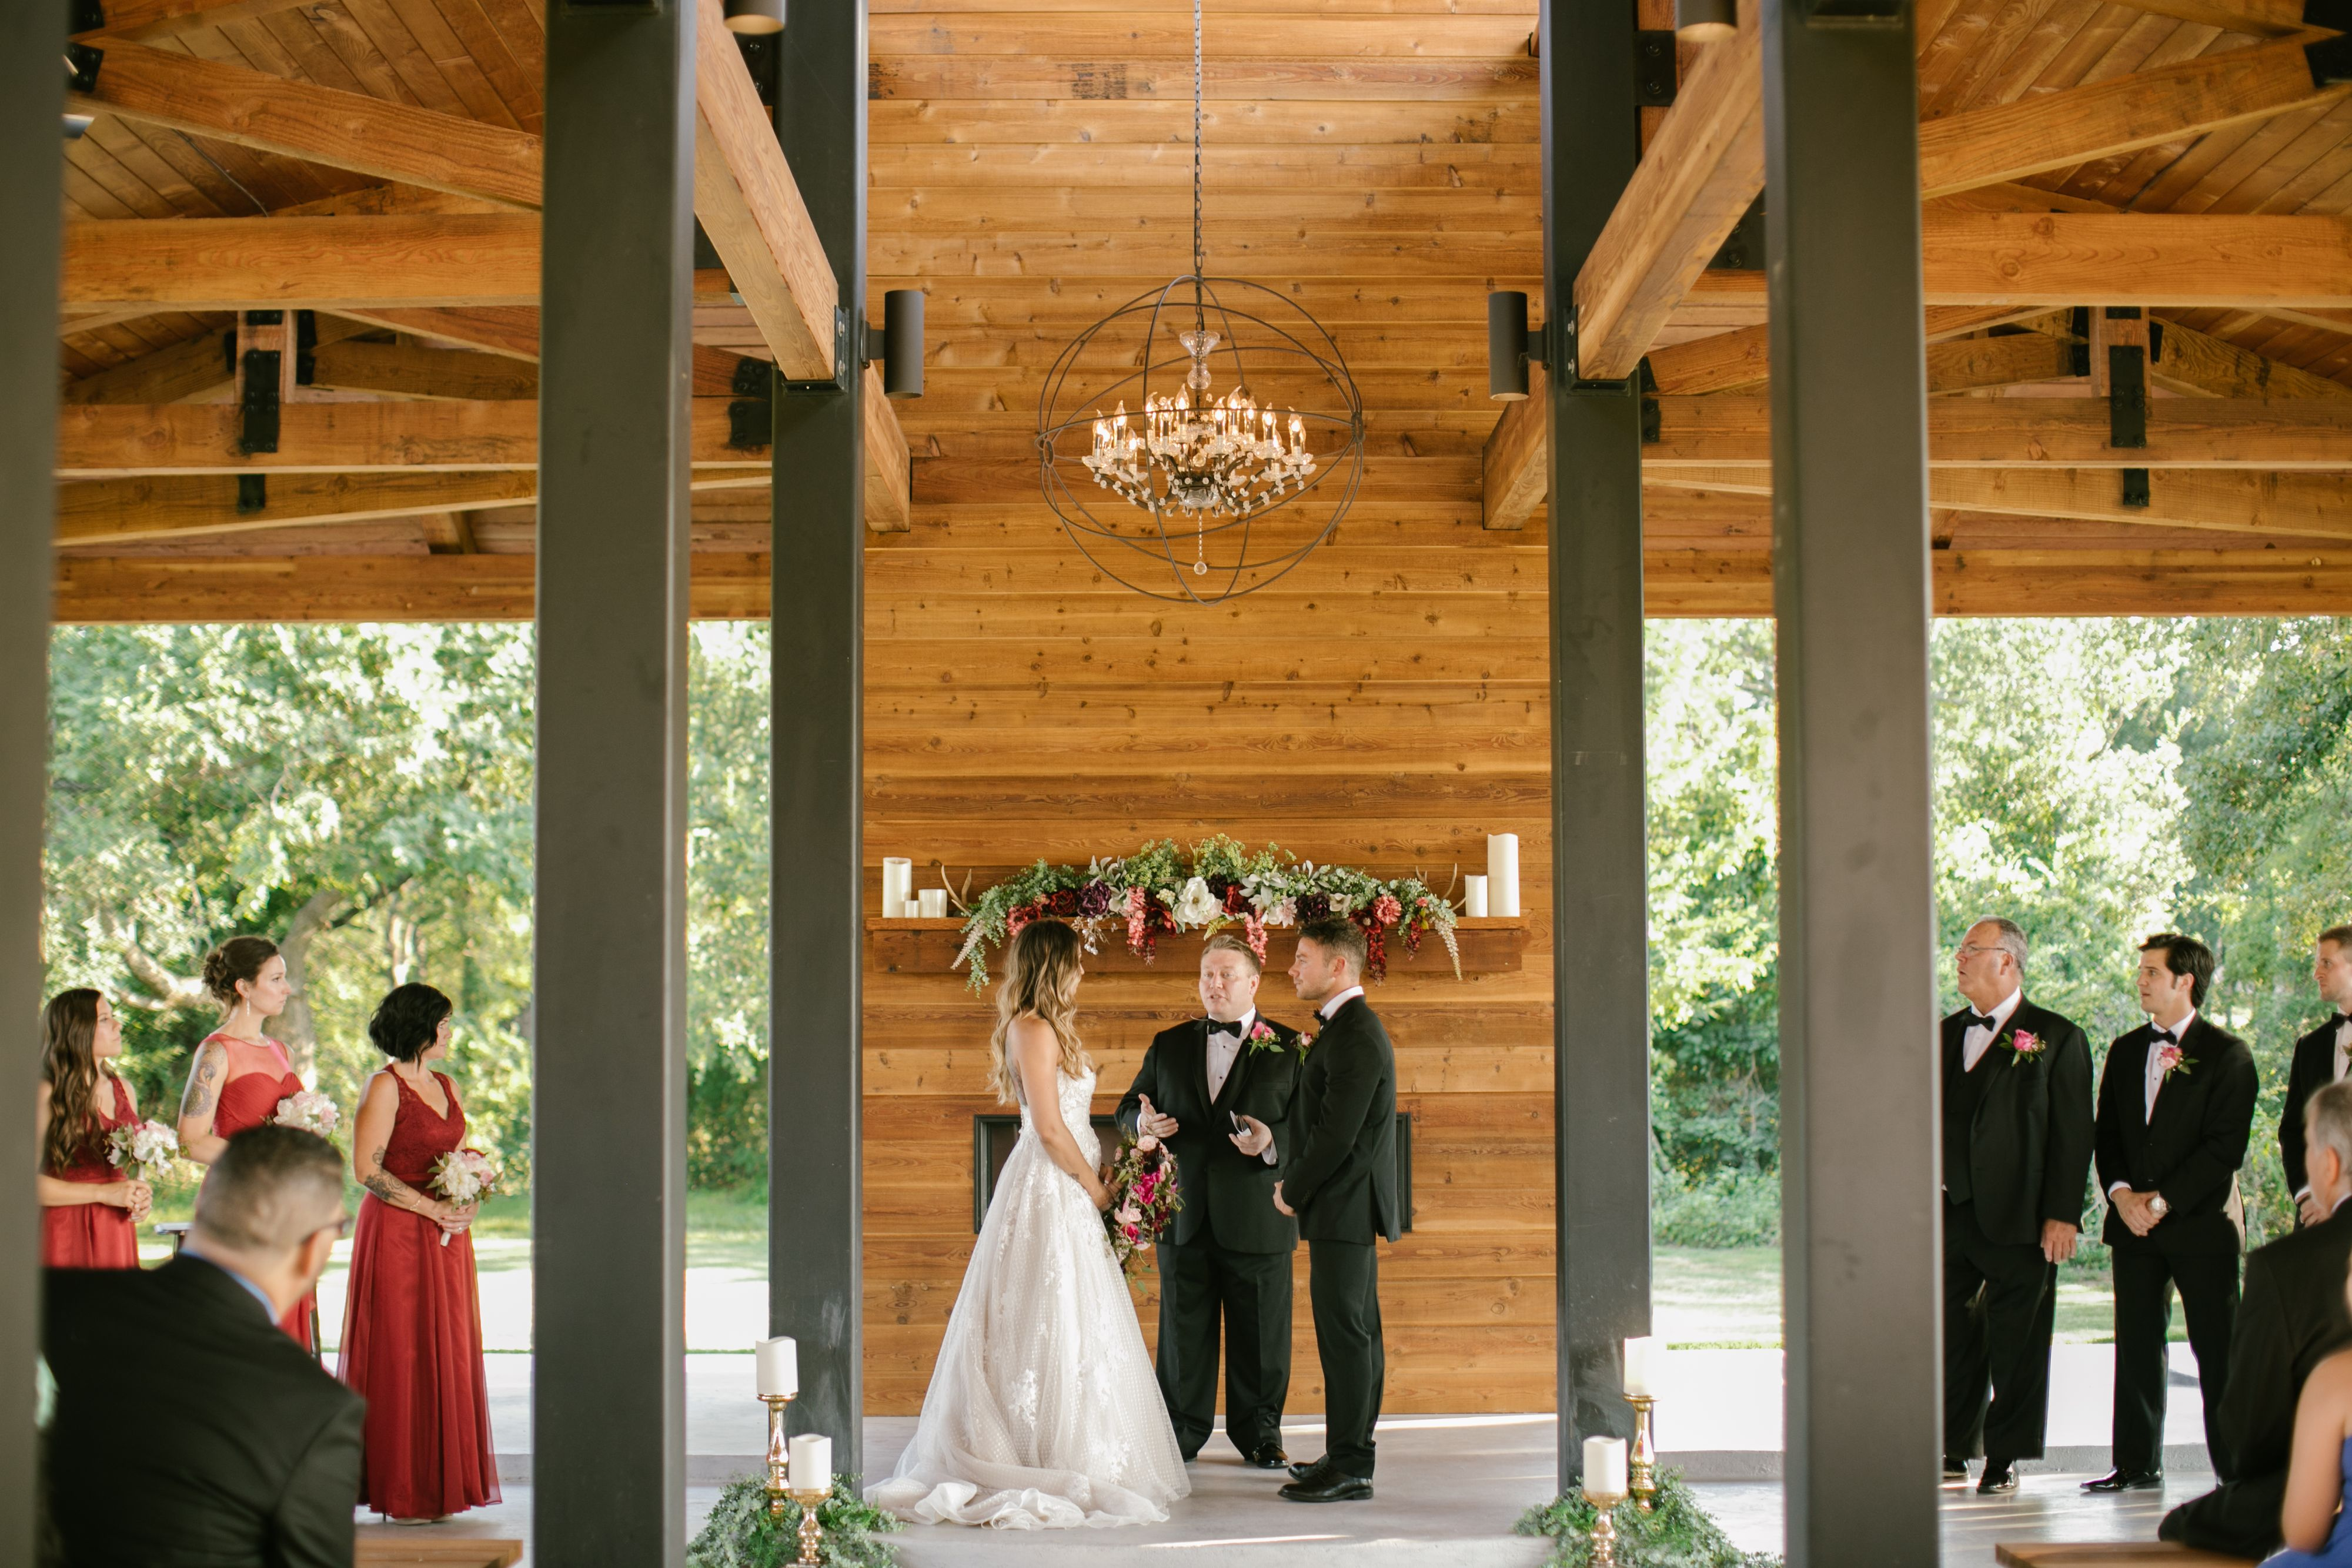 Morgan Creek Barn | Aubrey